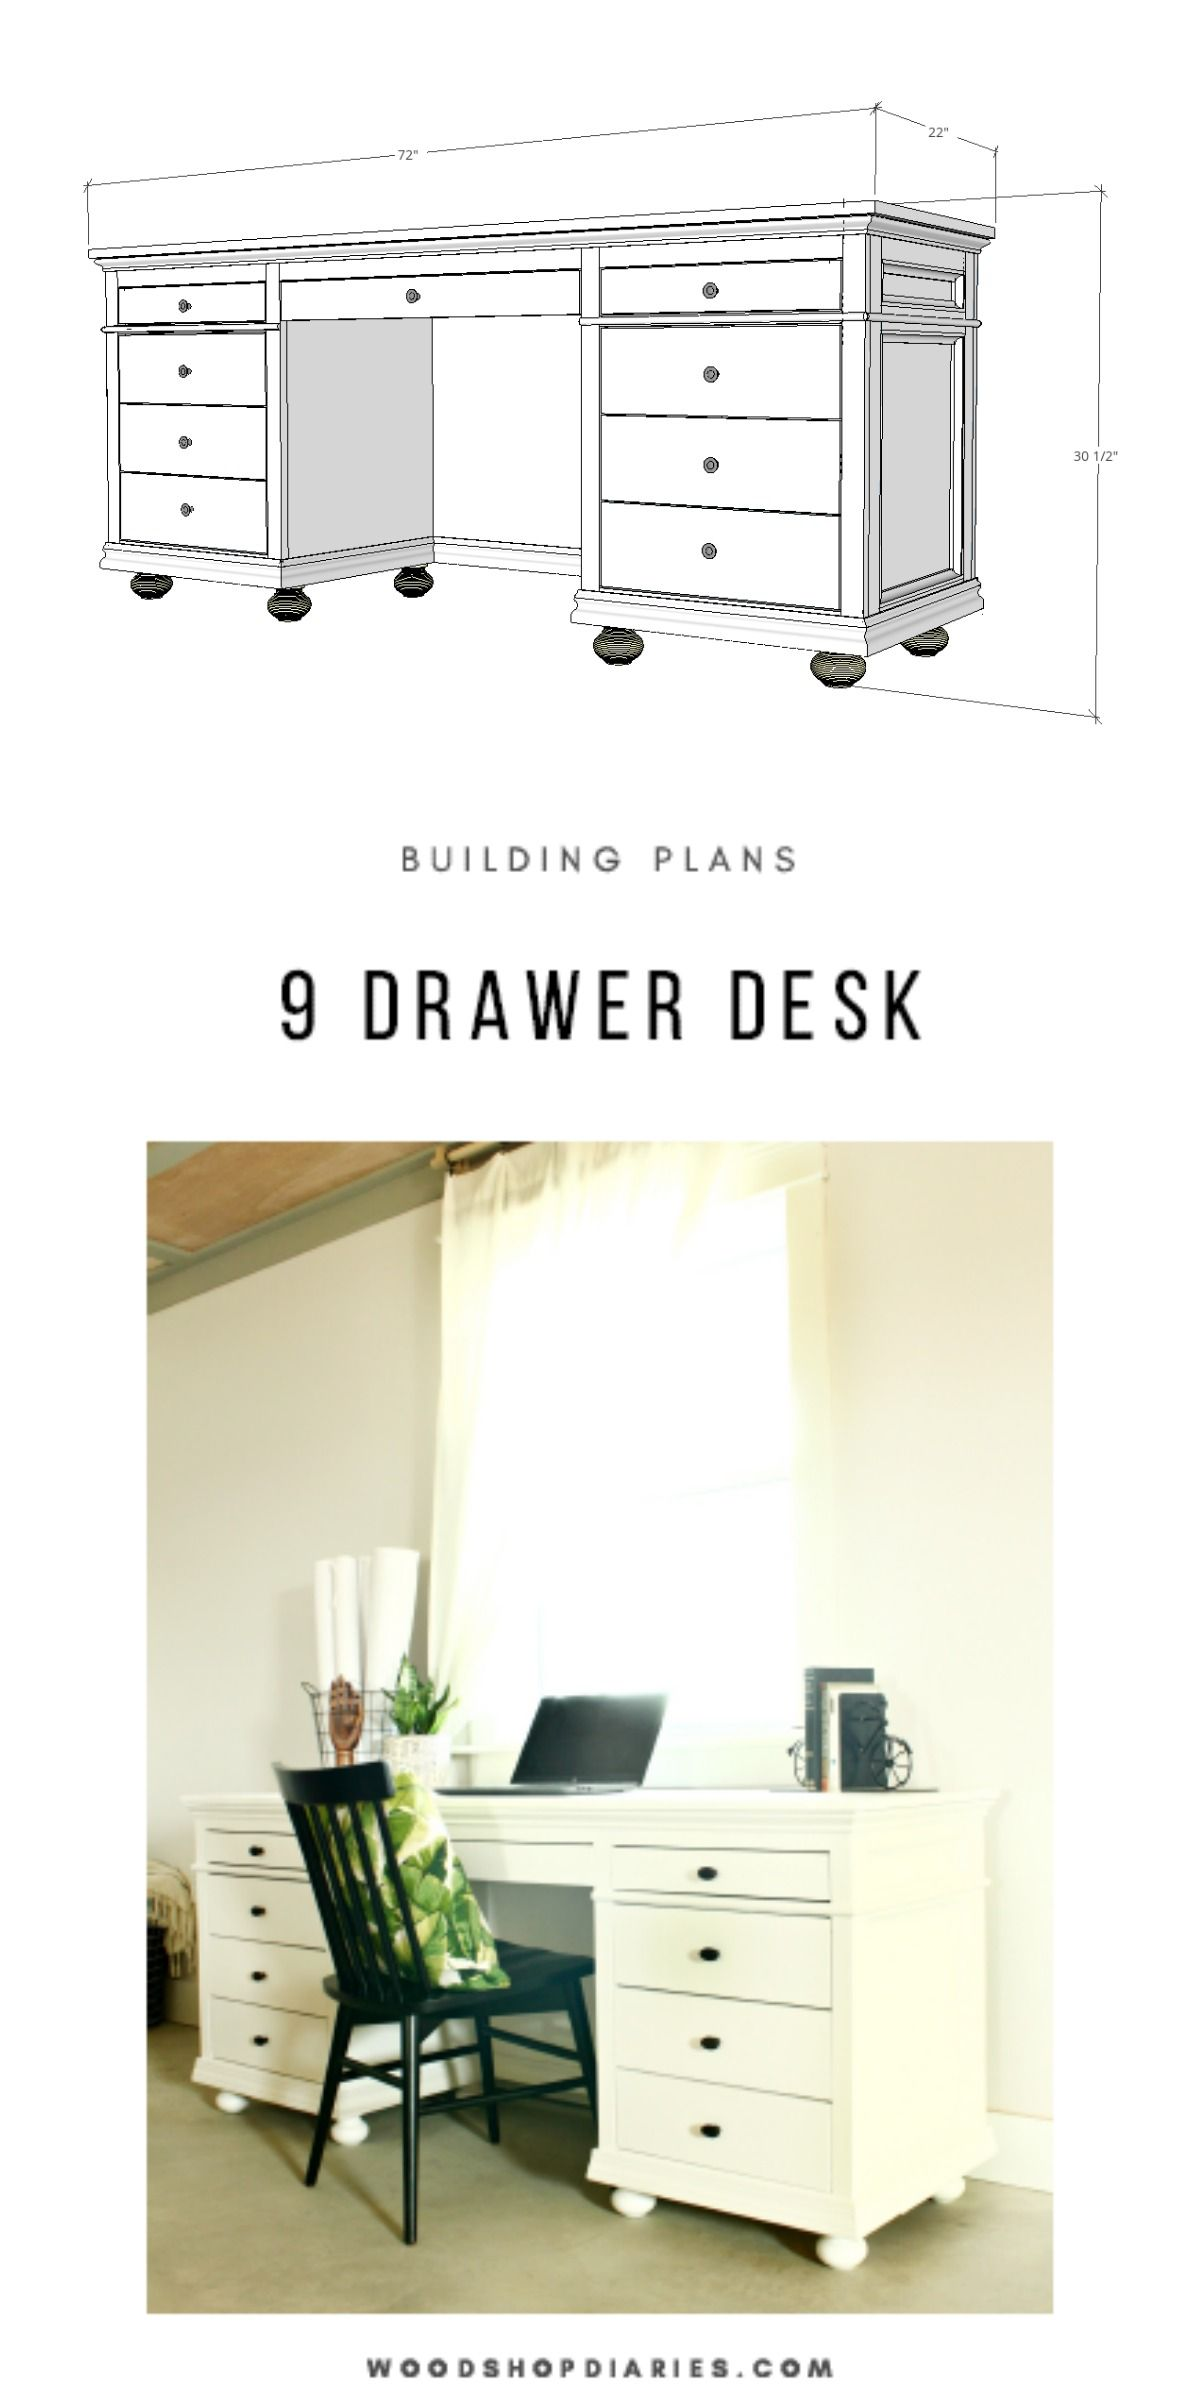 Diy storage desk for home office building plans and